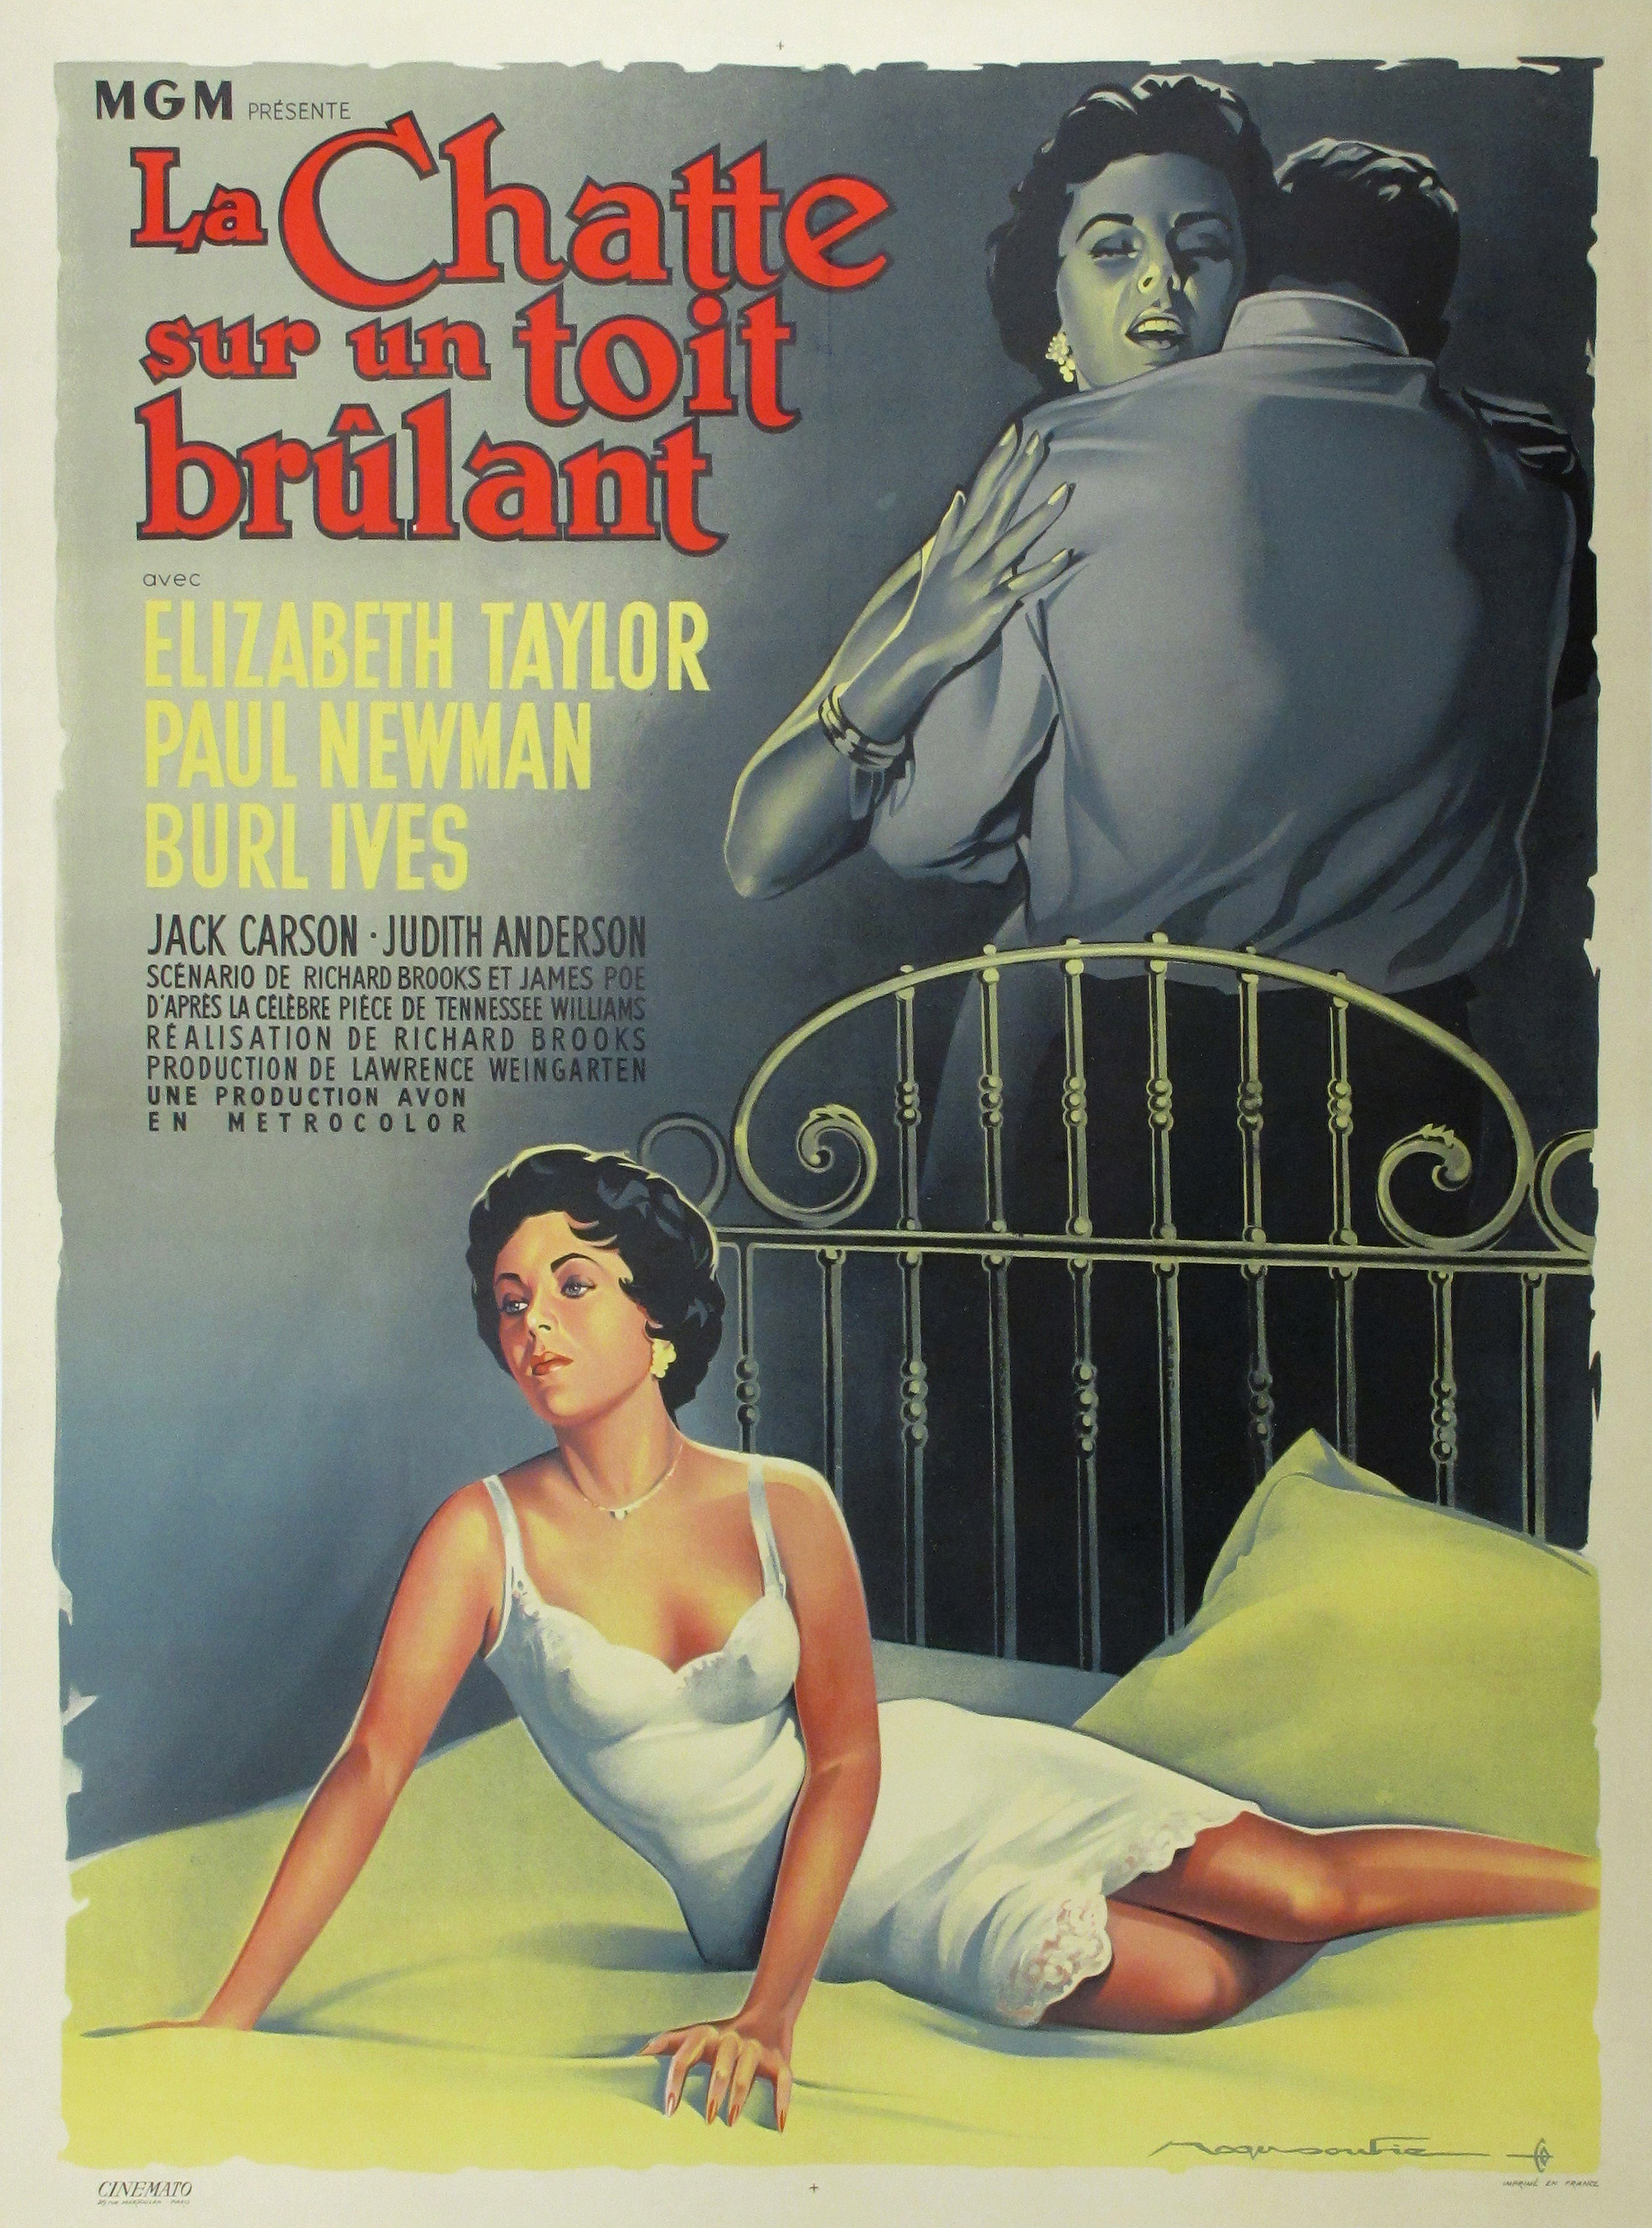 Actual Cat On A Hot Tin Roof Movie Poster By Roger Soubie Image